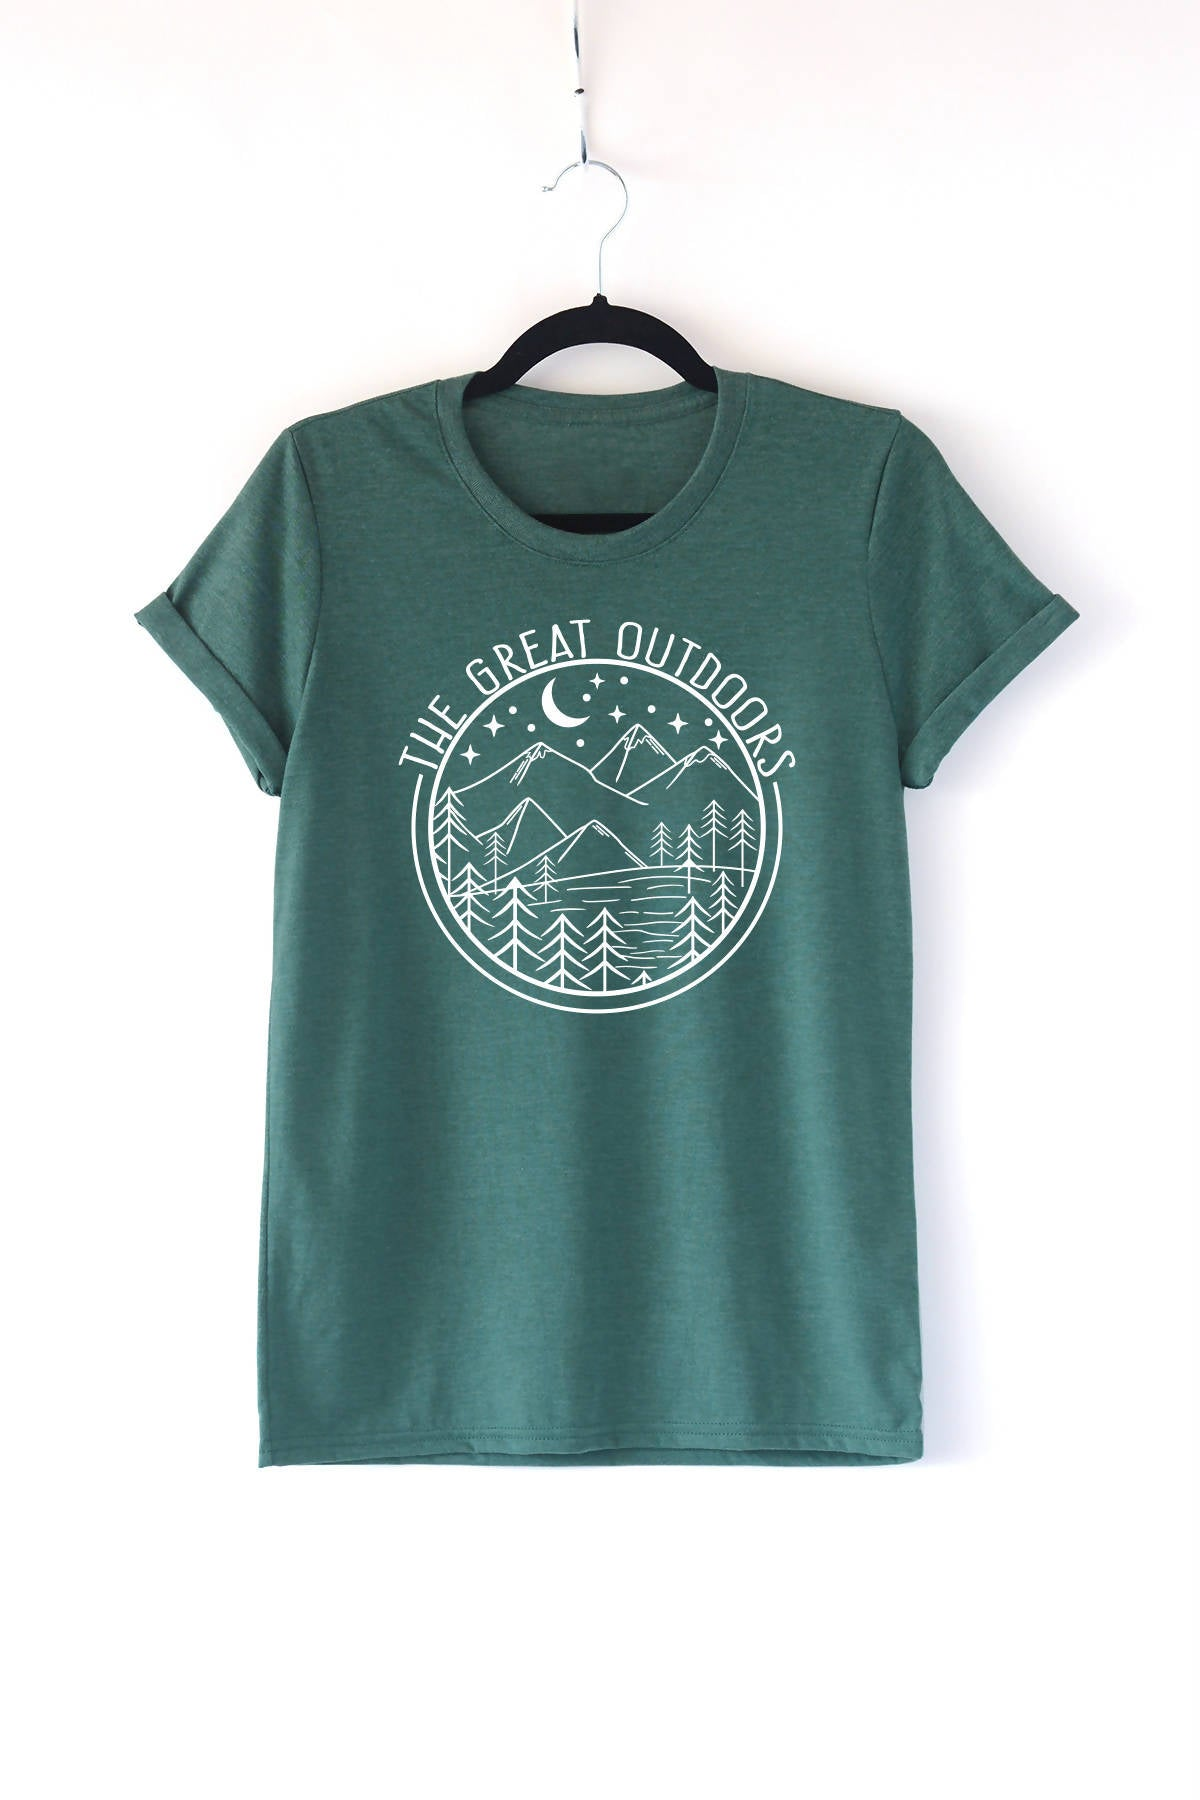 The Great Outdoors Adult Crewneck Tee